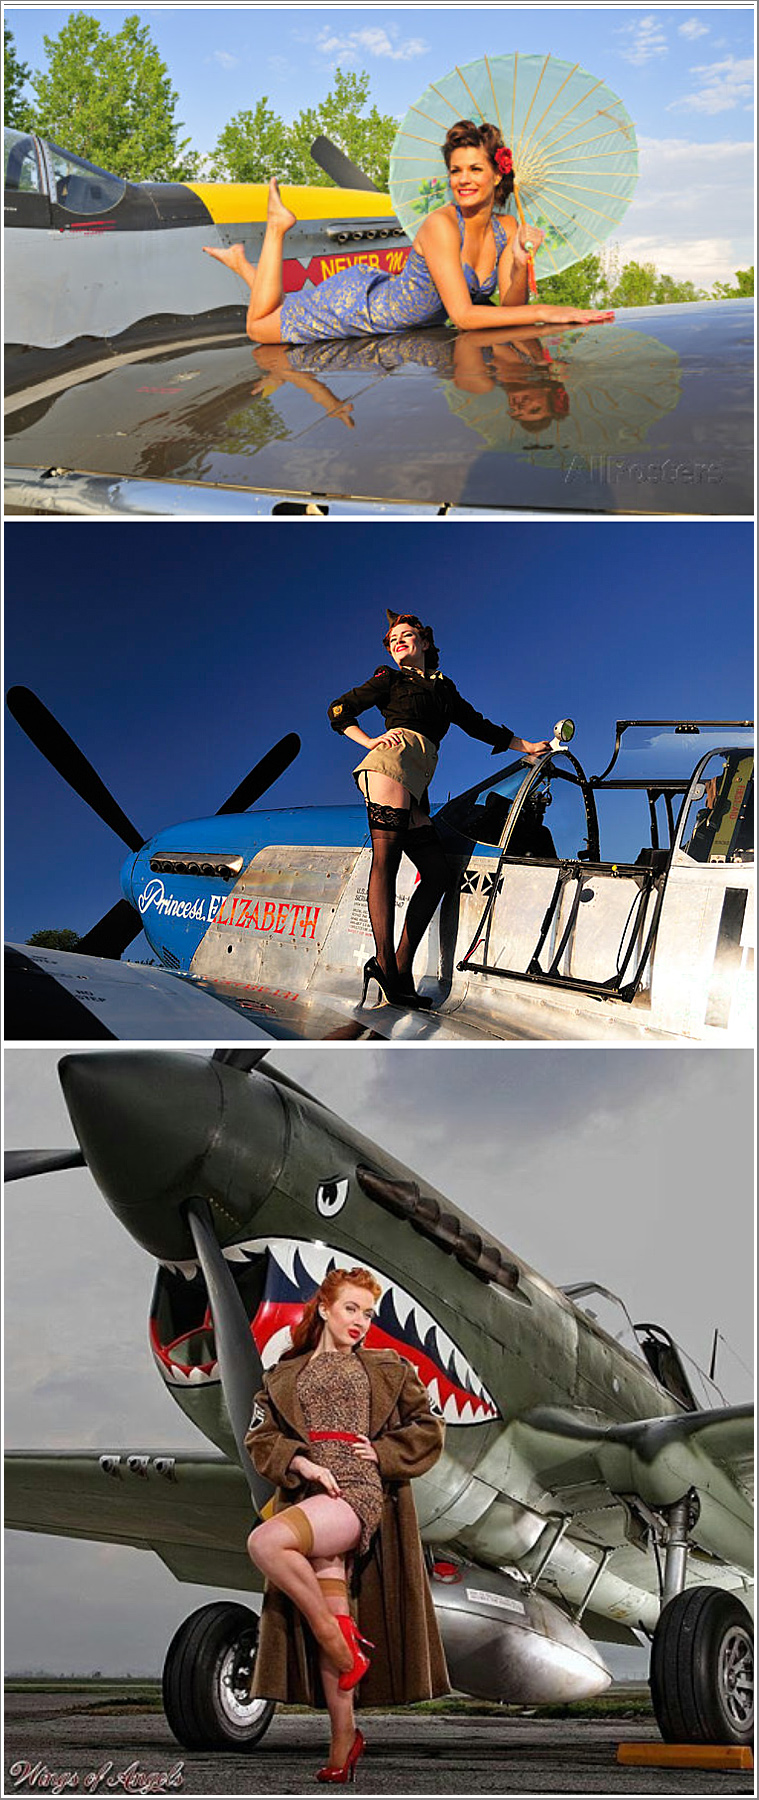 Recreating those Pin Up shots of the 1940's with WWII Fighter Planes, Thursday 13th June 2019, 12:00-14:30